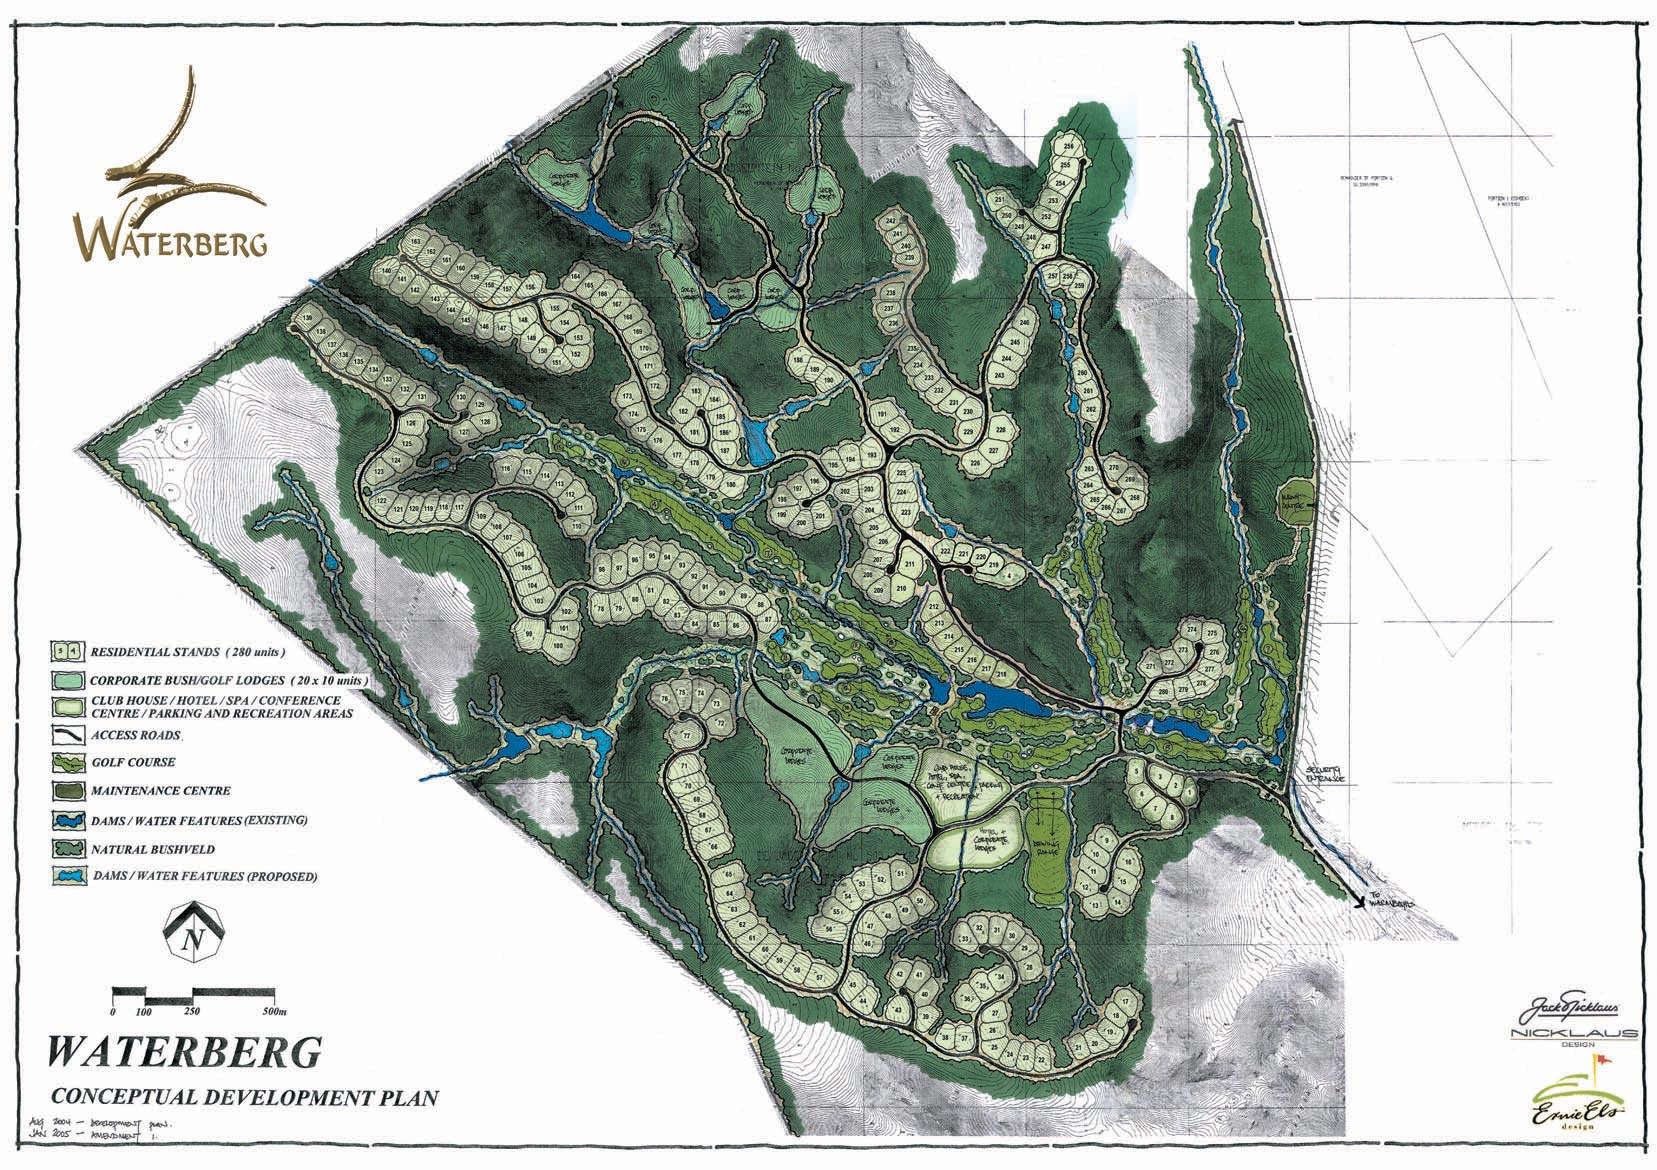 waterberg-site-plan-large.jpg